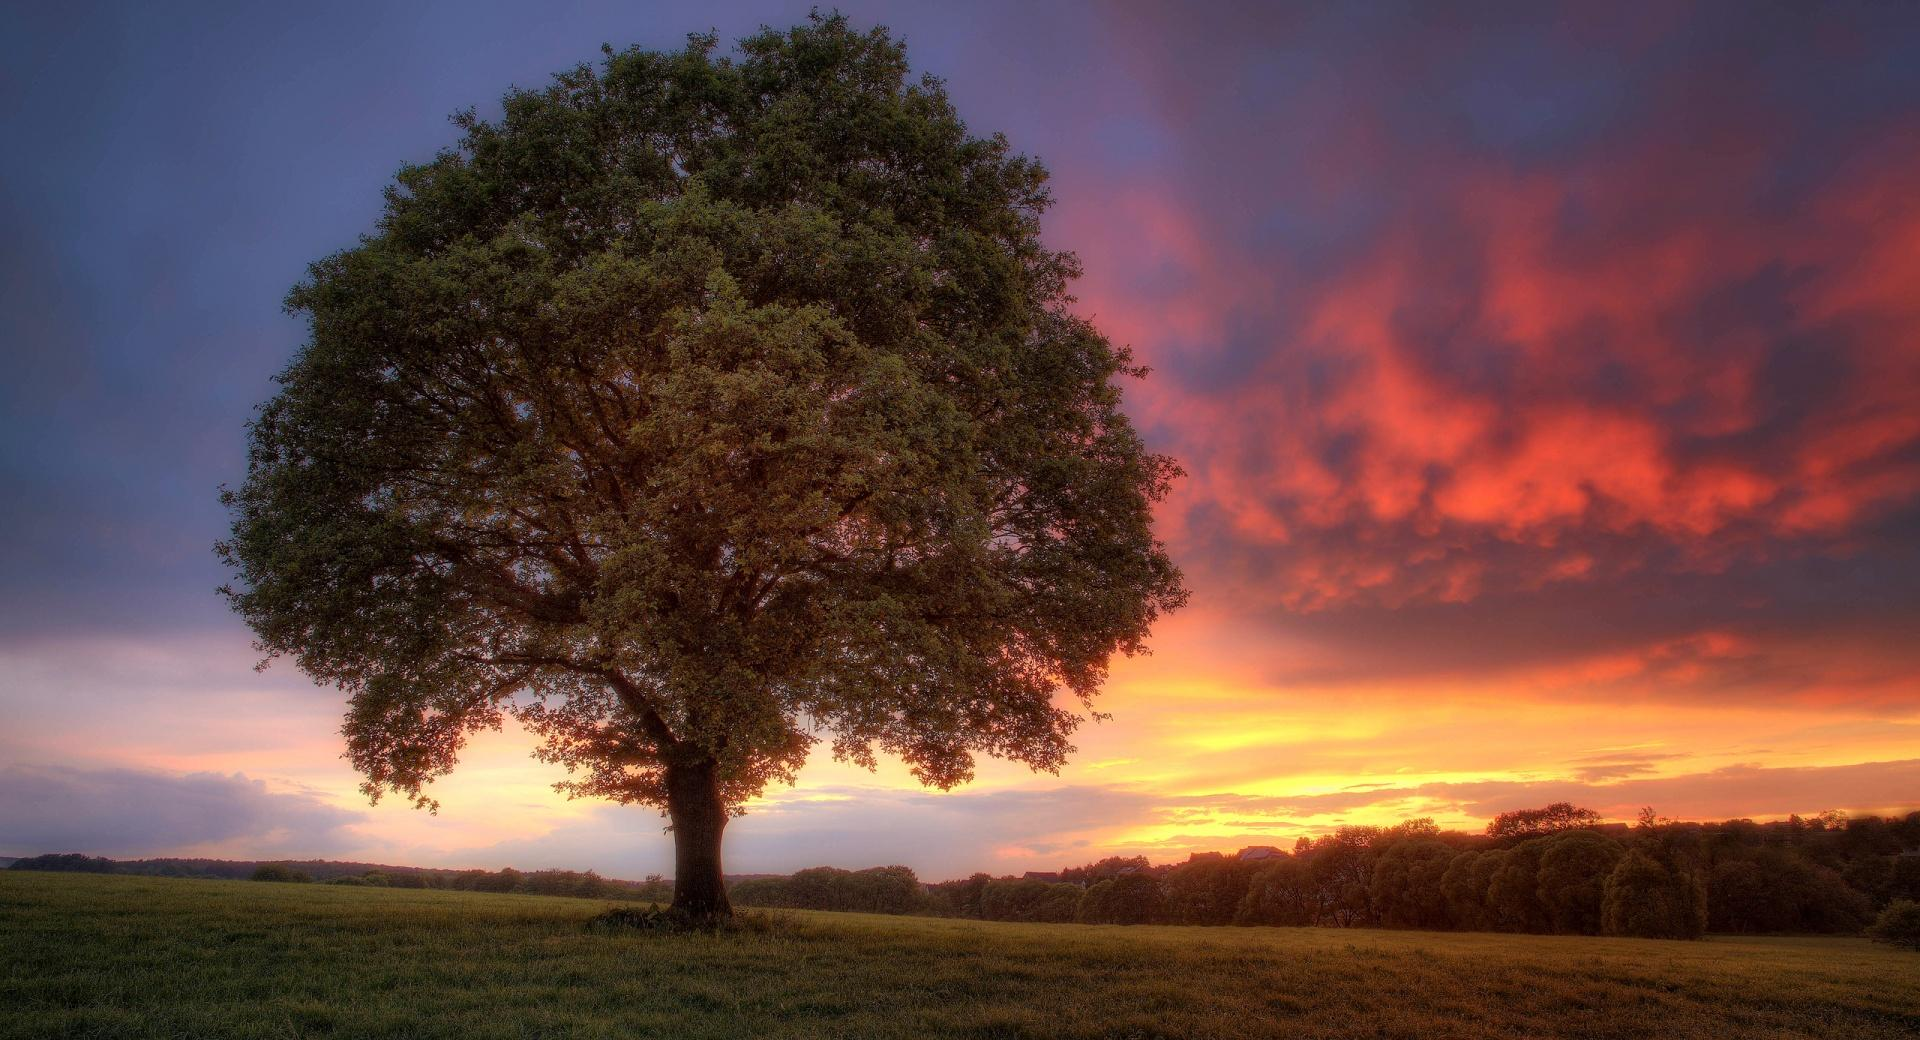 Sunset Tree wallpapers HD quality